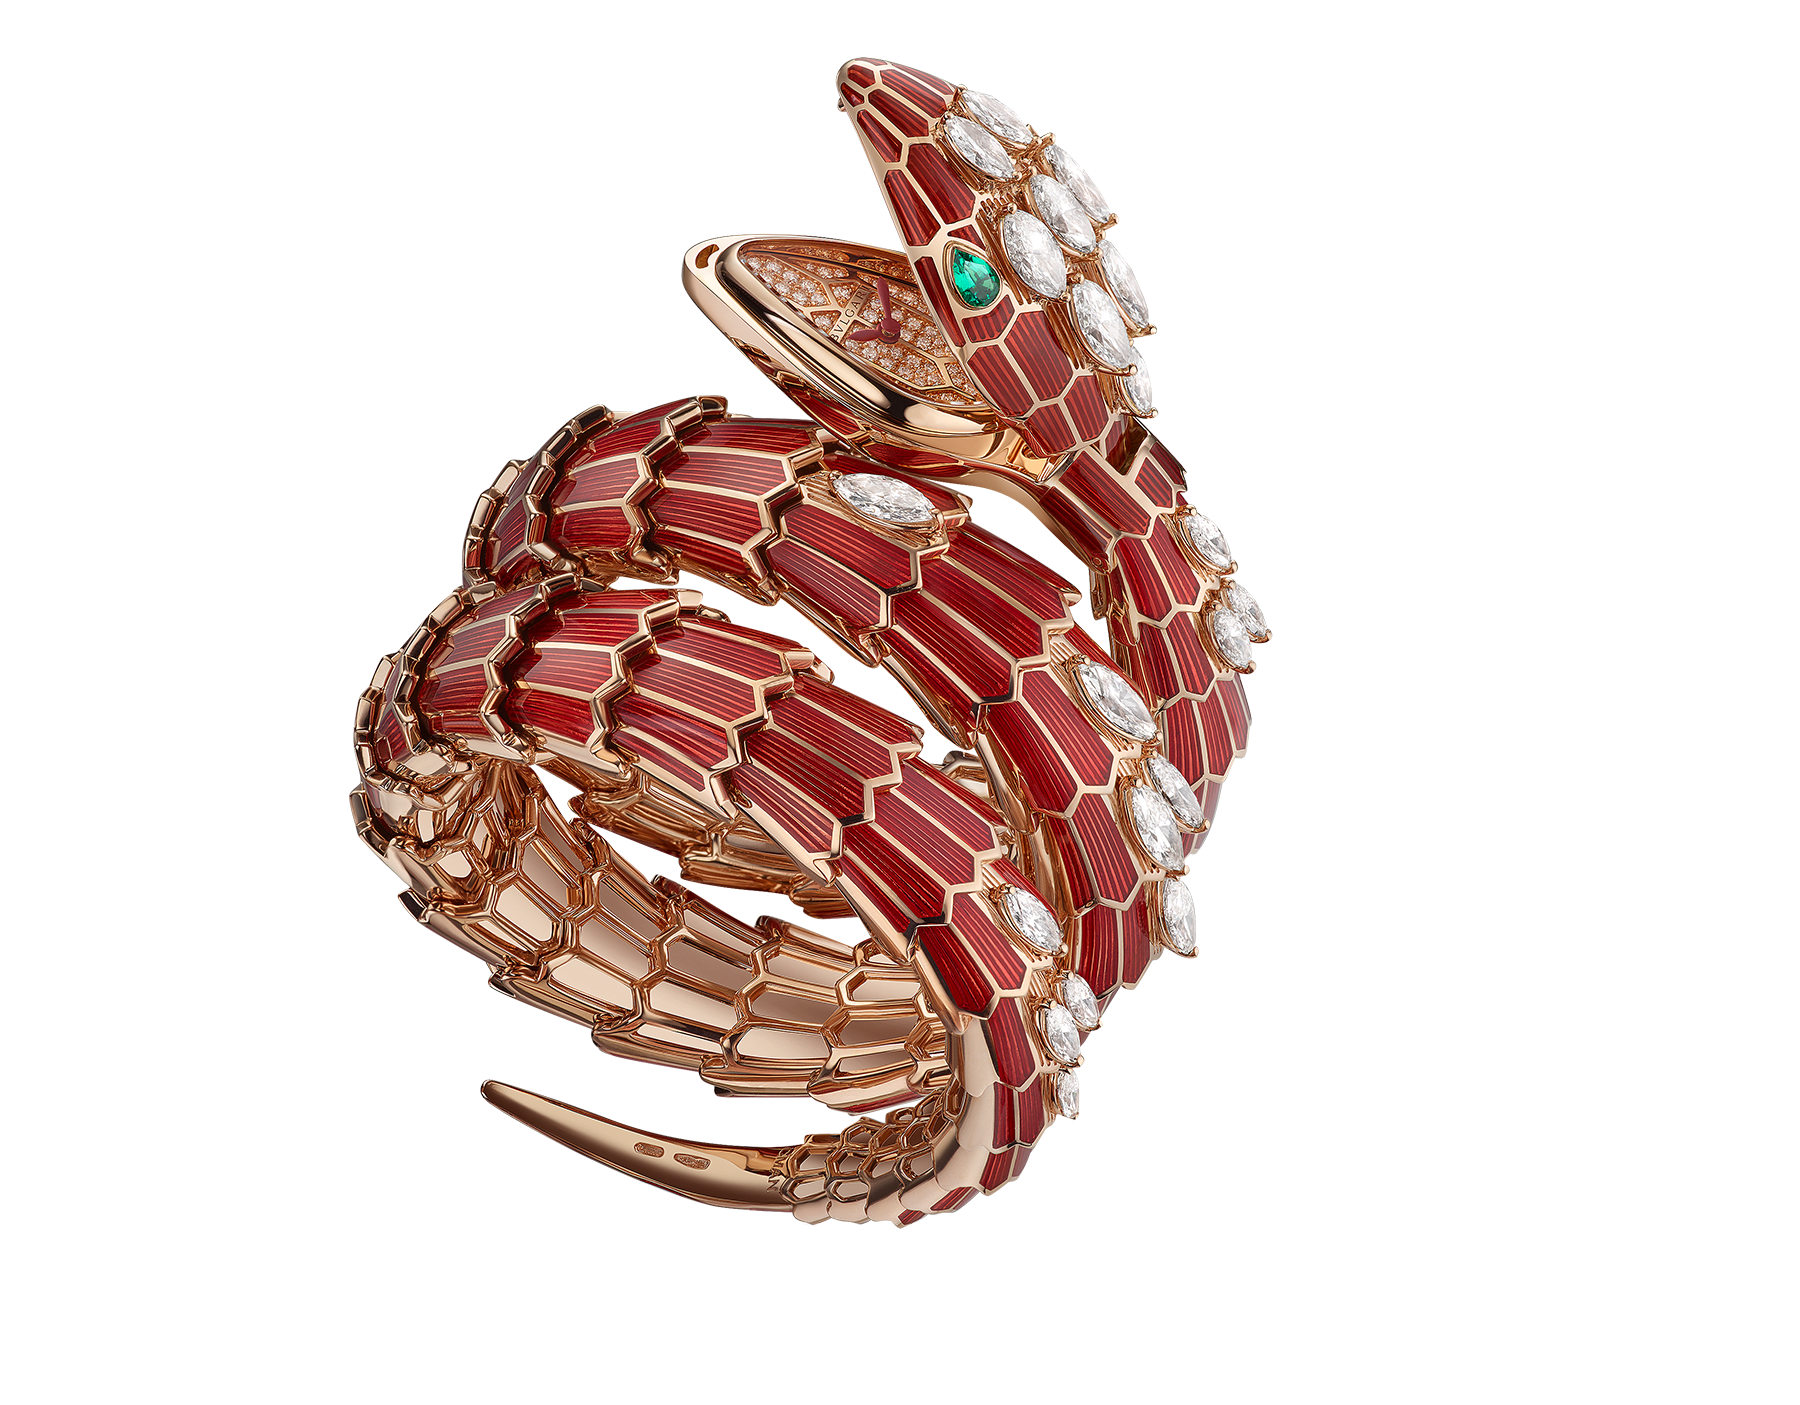 Serpenti Secret Watch with 18 kt rose gold head and double spiral bracelet, both coated with red lacquer and set with marquise-cut diamonds, emerald eyes and 18 kt rose gold dial set with brilliant cut diamonds. 102527 image 1